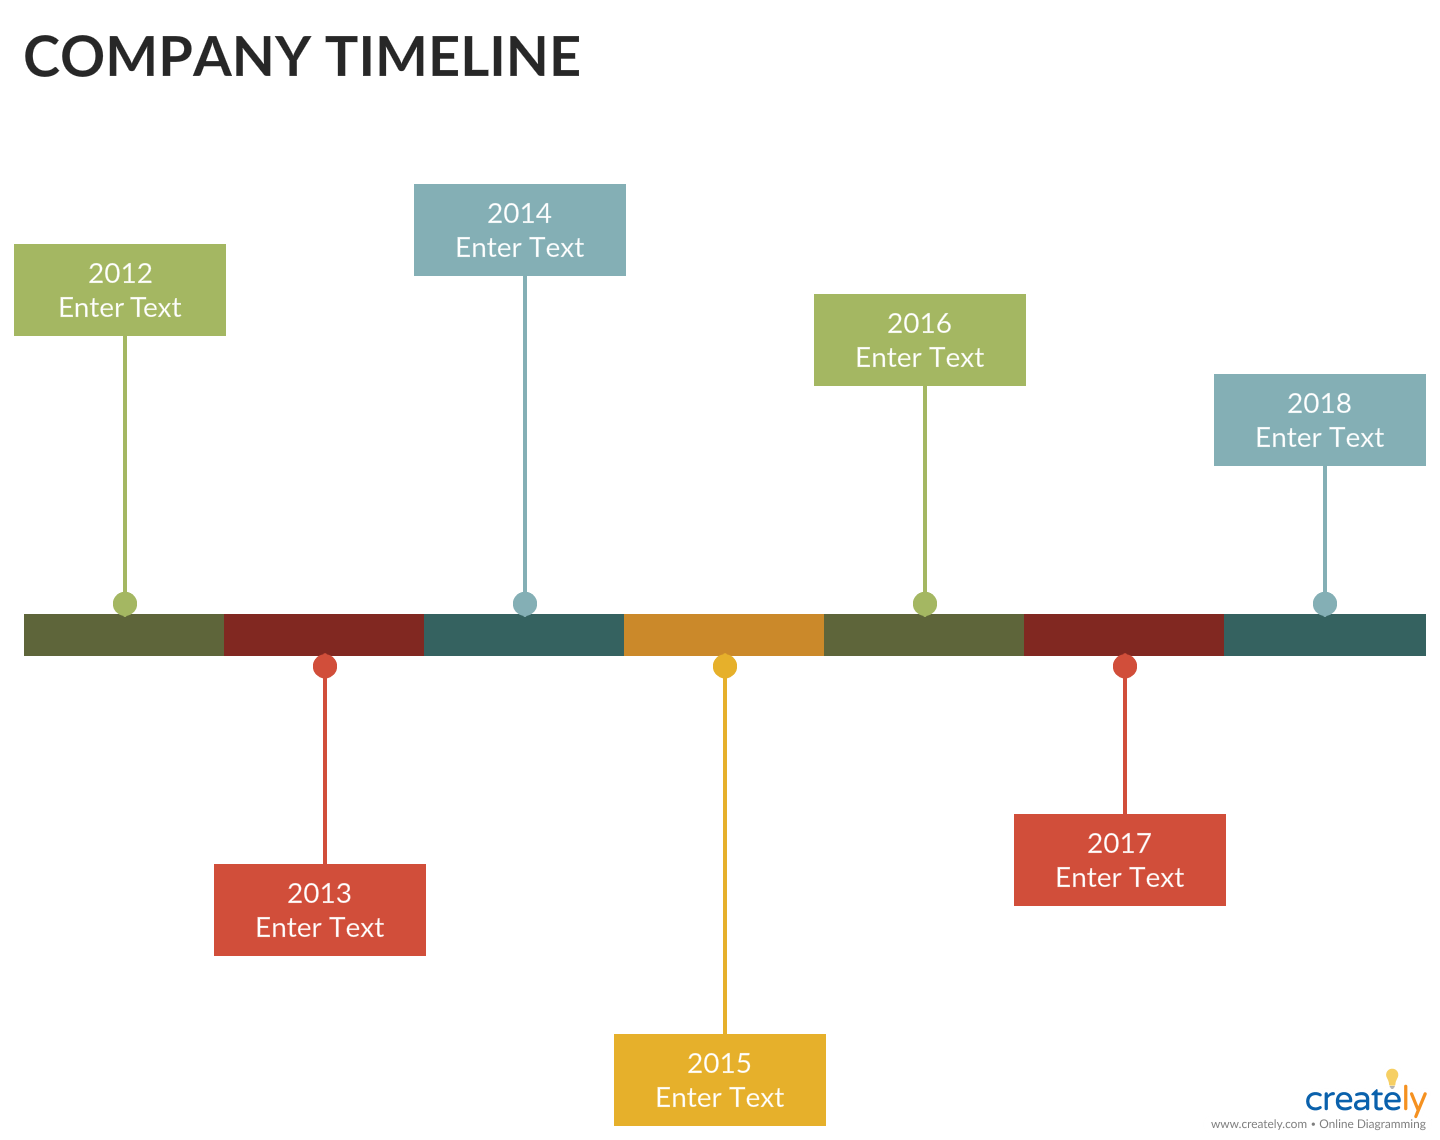 medium resolution of company timeline template is one of the best ways to create your creative company and business history and the timeframe of your company progress or